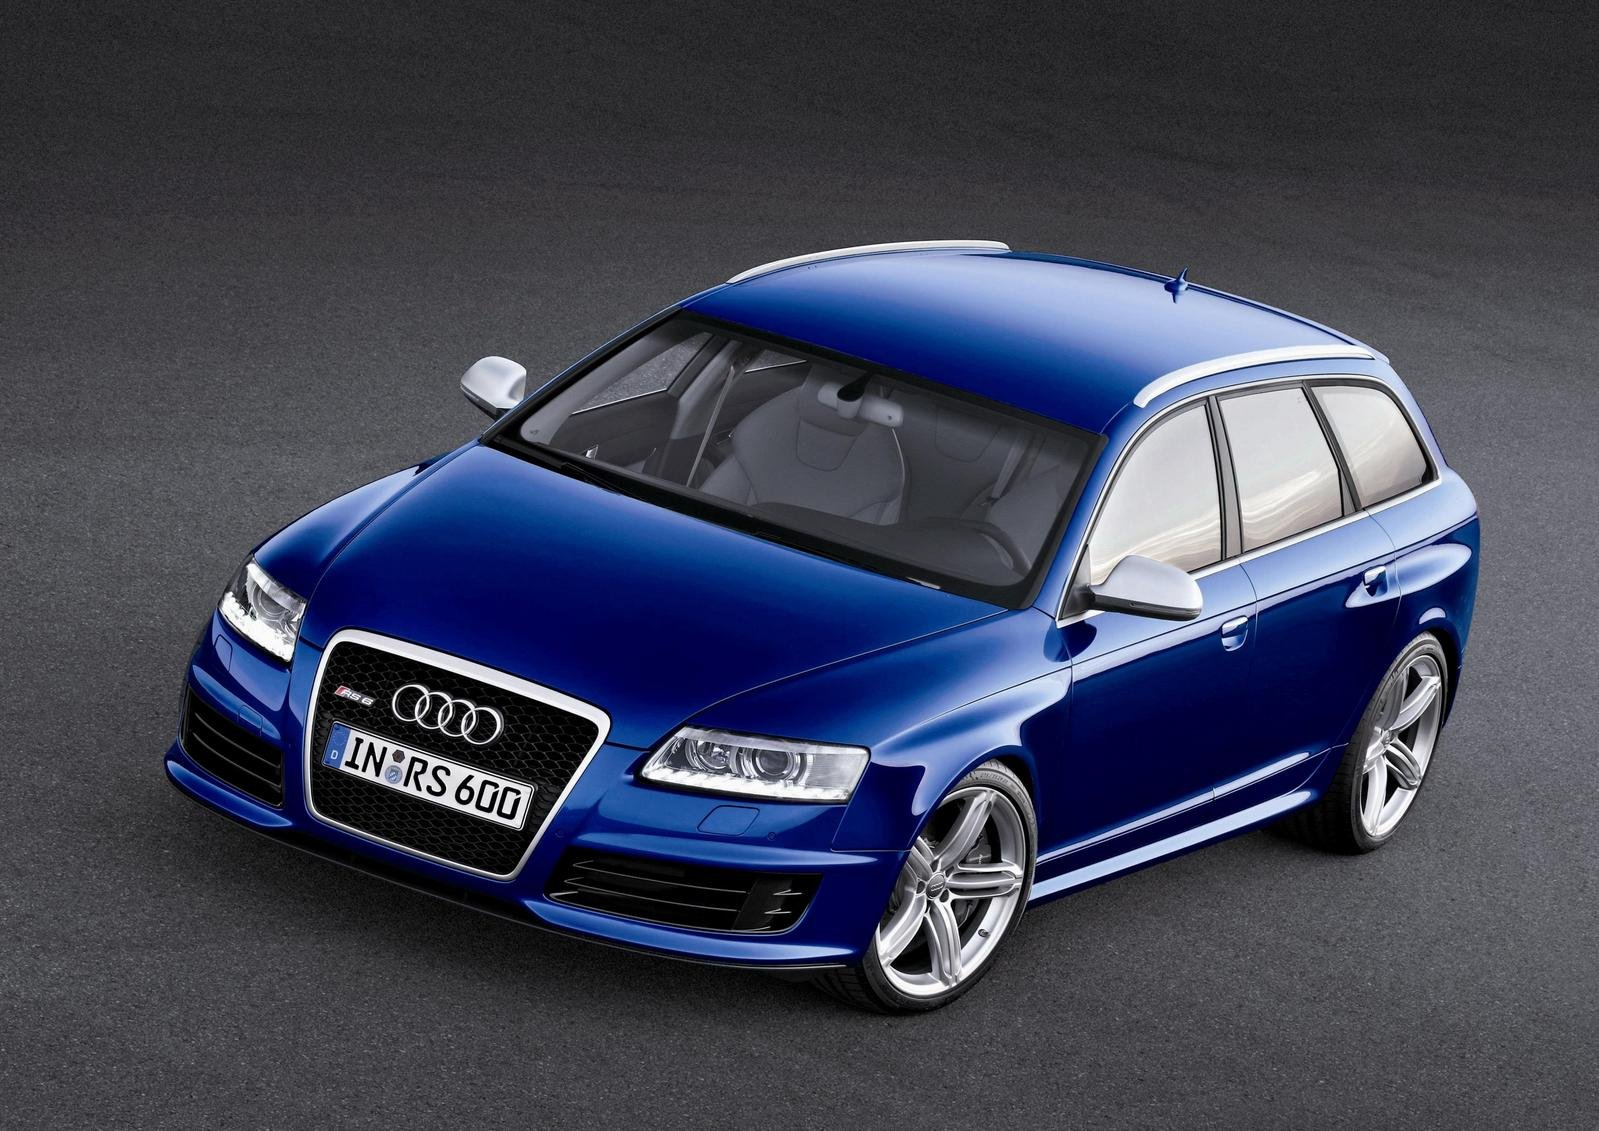 2008 audi rs6 avant review top speed. Black Bedroom Furniture Sets. Home Design Ideas